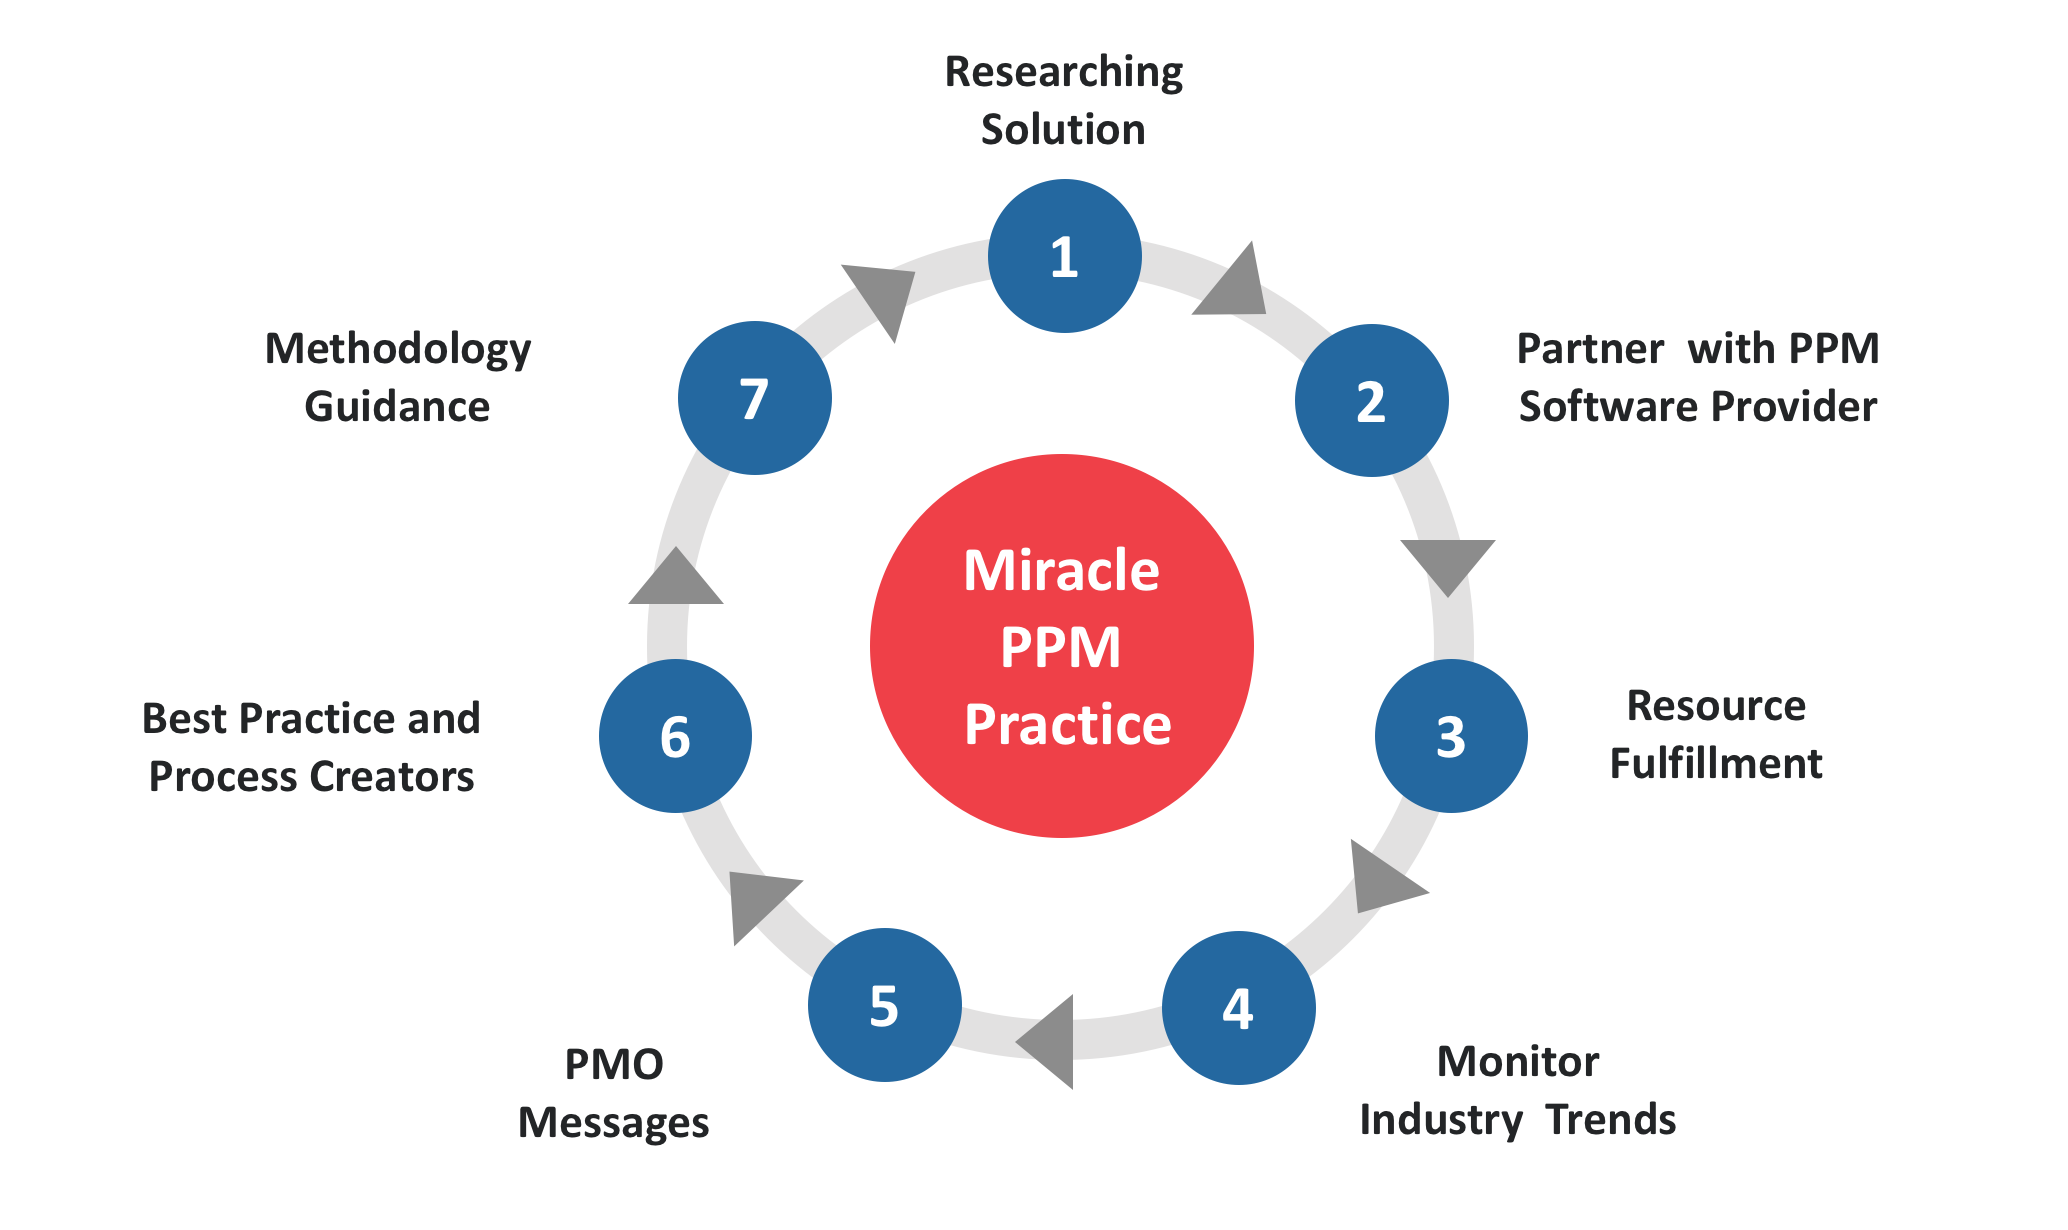 Miracle PPM practice